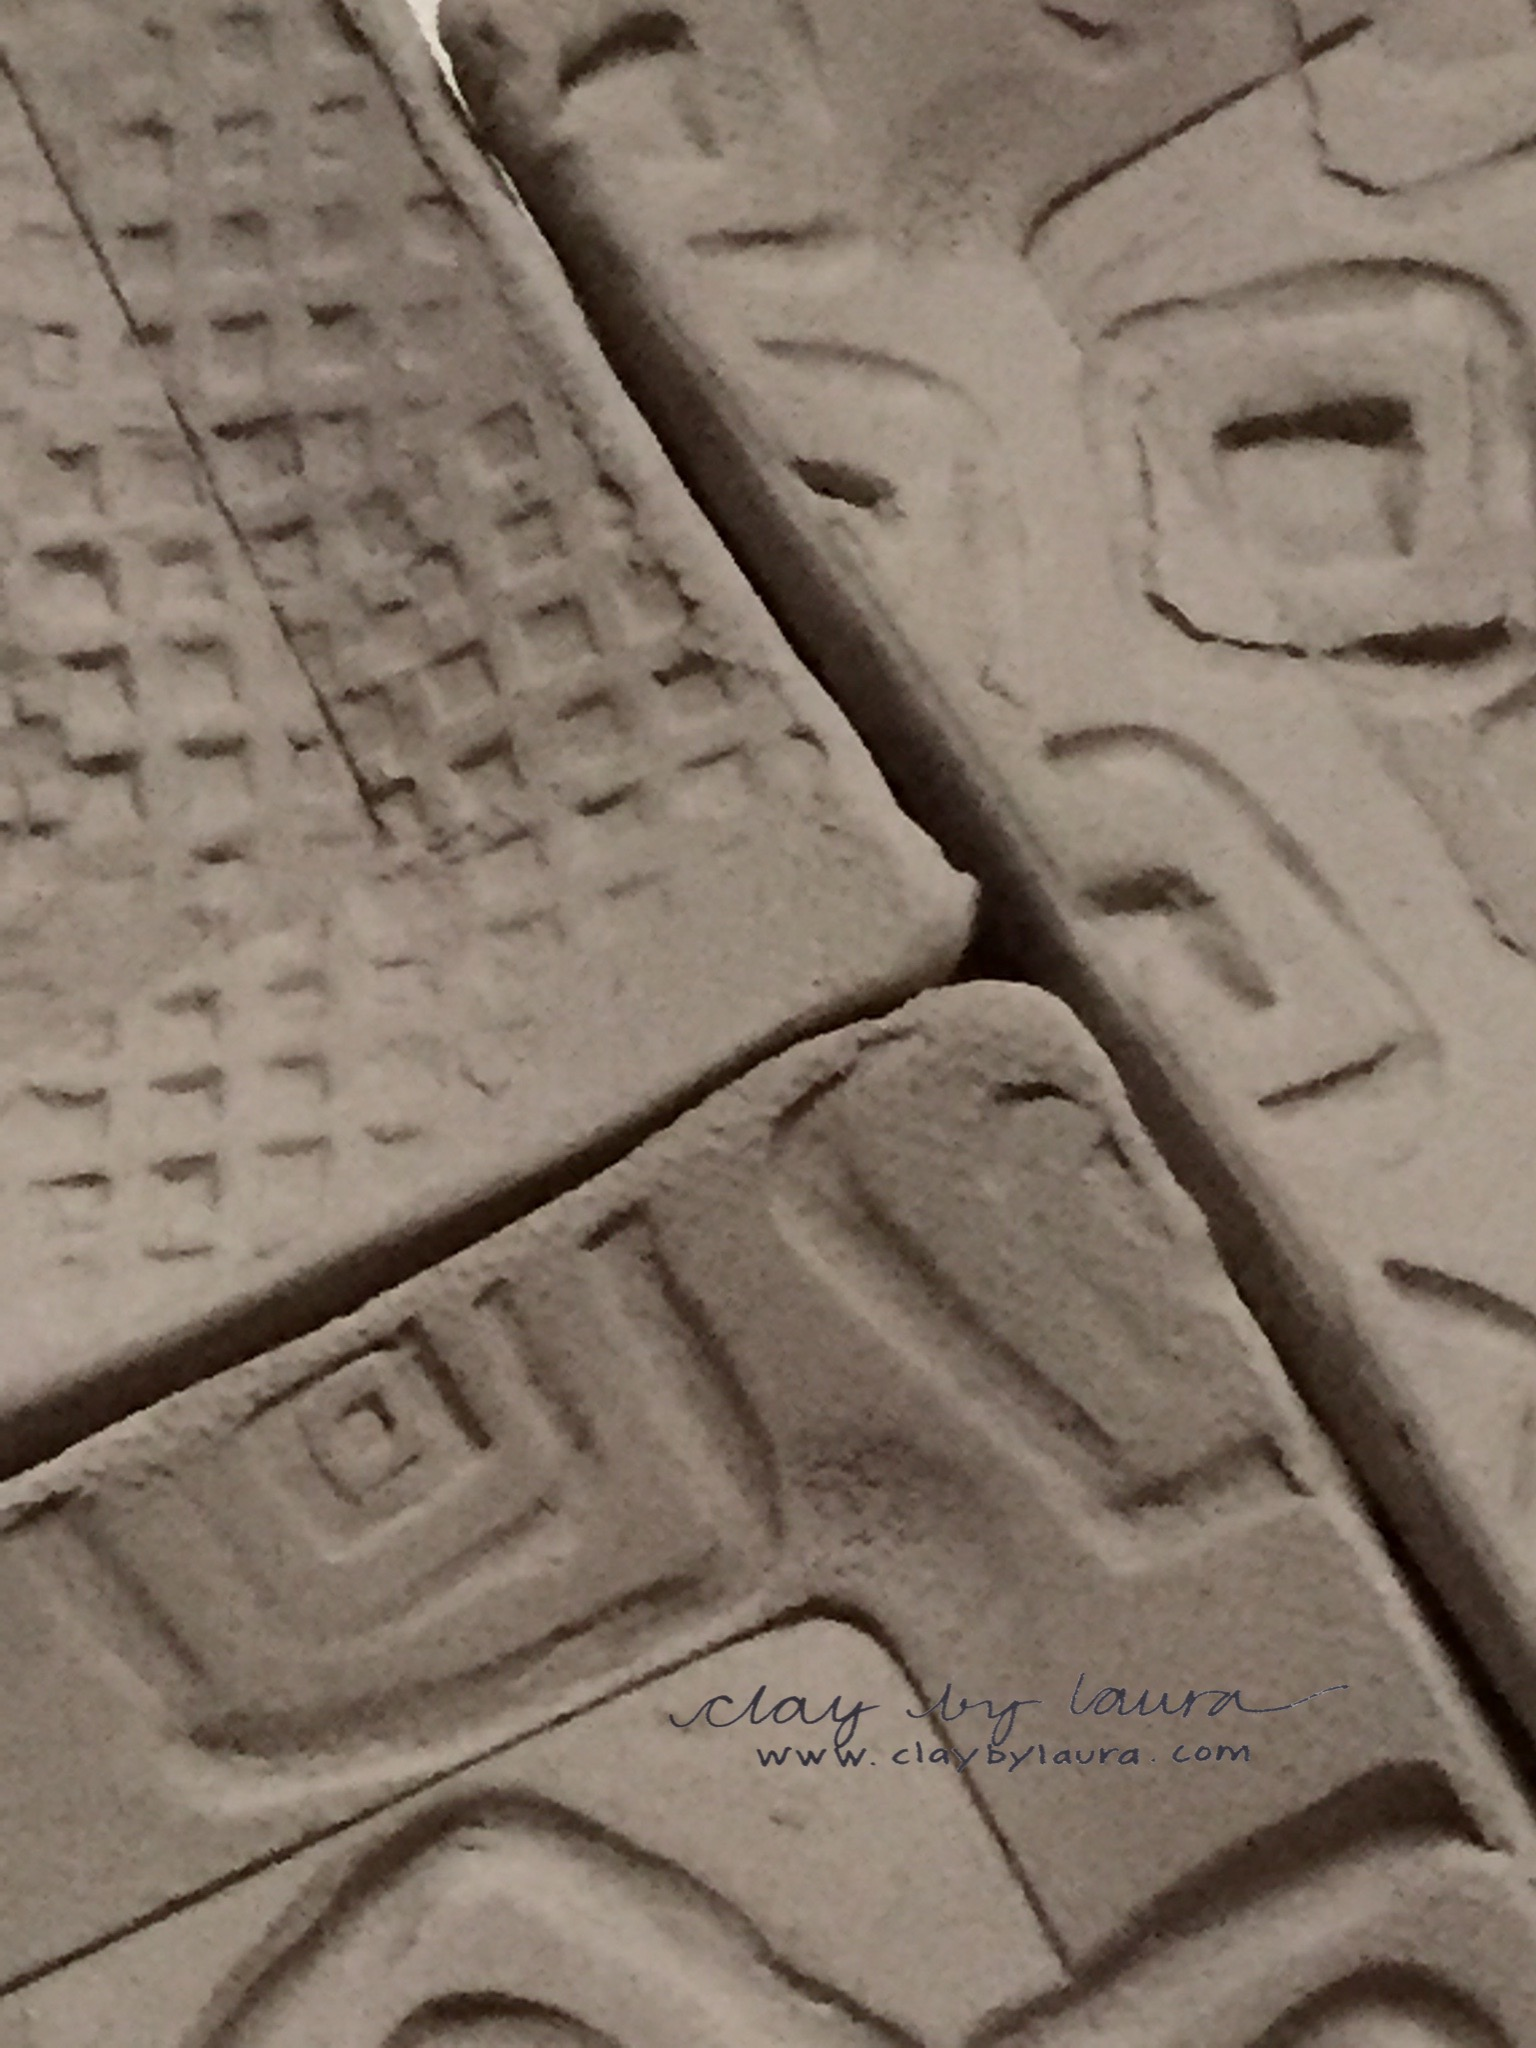 I often texture the clay in random patterns. Here are three examples of square images I've used on a small square dish.